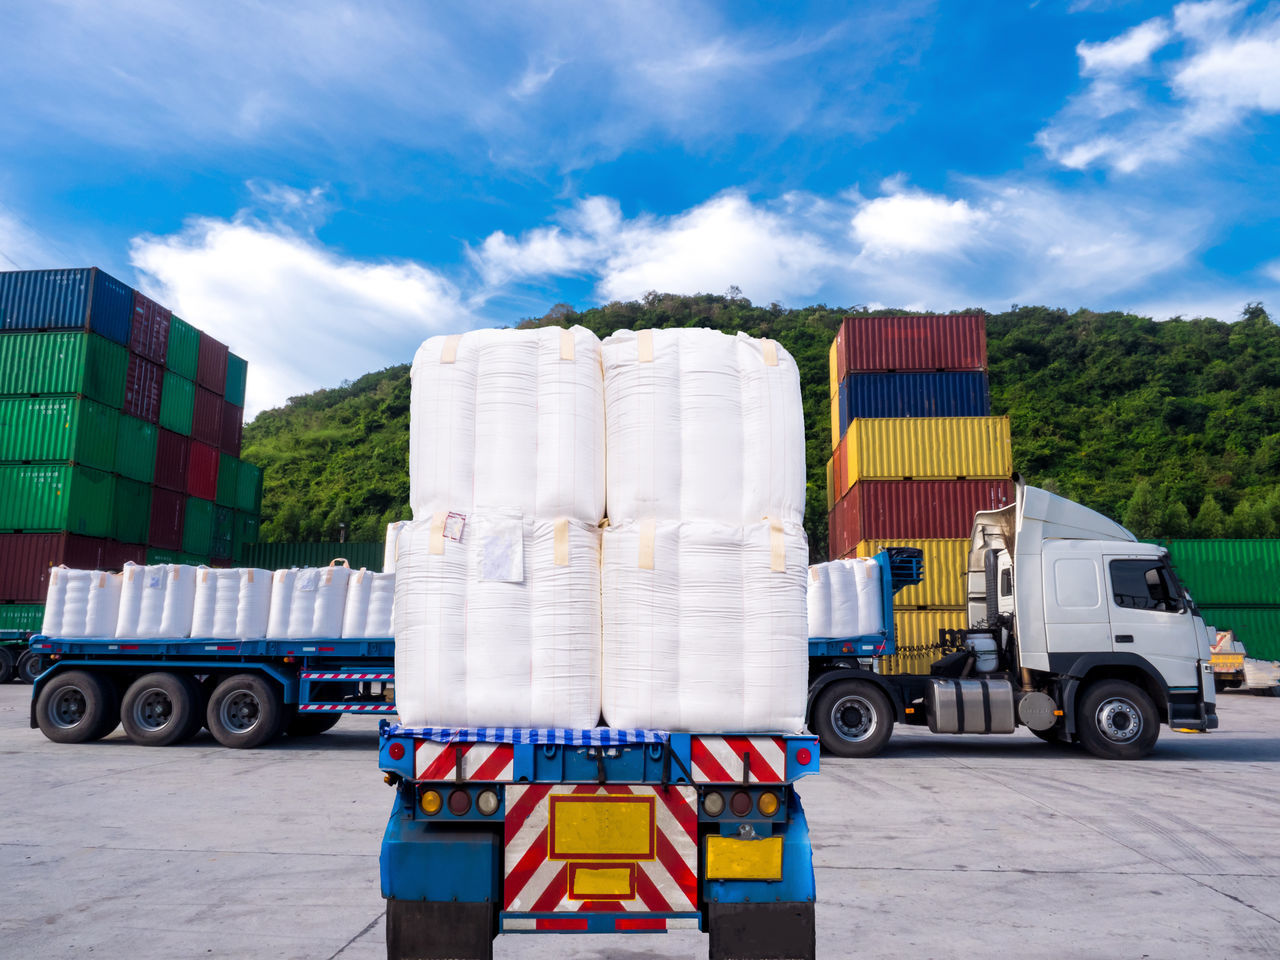 The truck to delivery tapioca in jumbo bag at the port Freight Transportation Commercial Land Vehicle Truck Container Semi-truck Industry Business Finance And Industry Cargo Container Transportation Shipping  Stack Distribution Warehouse Motor Vehicle Delivering Trucking Day No People Warehouse Outdoors Sky Lift Season  Stacking Logistics Sugar